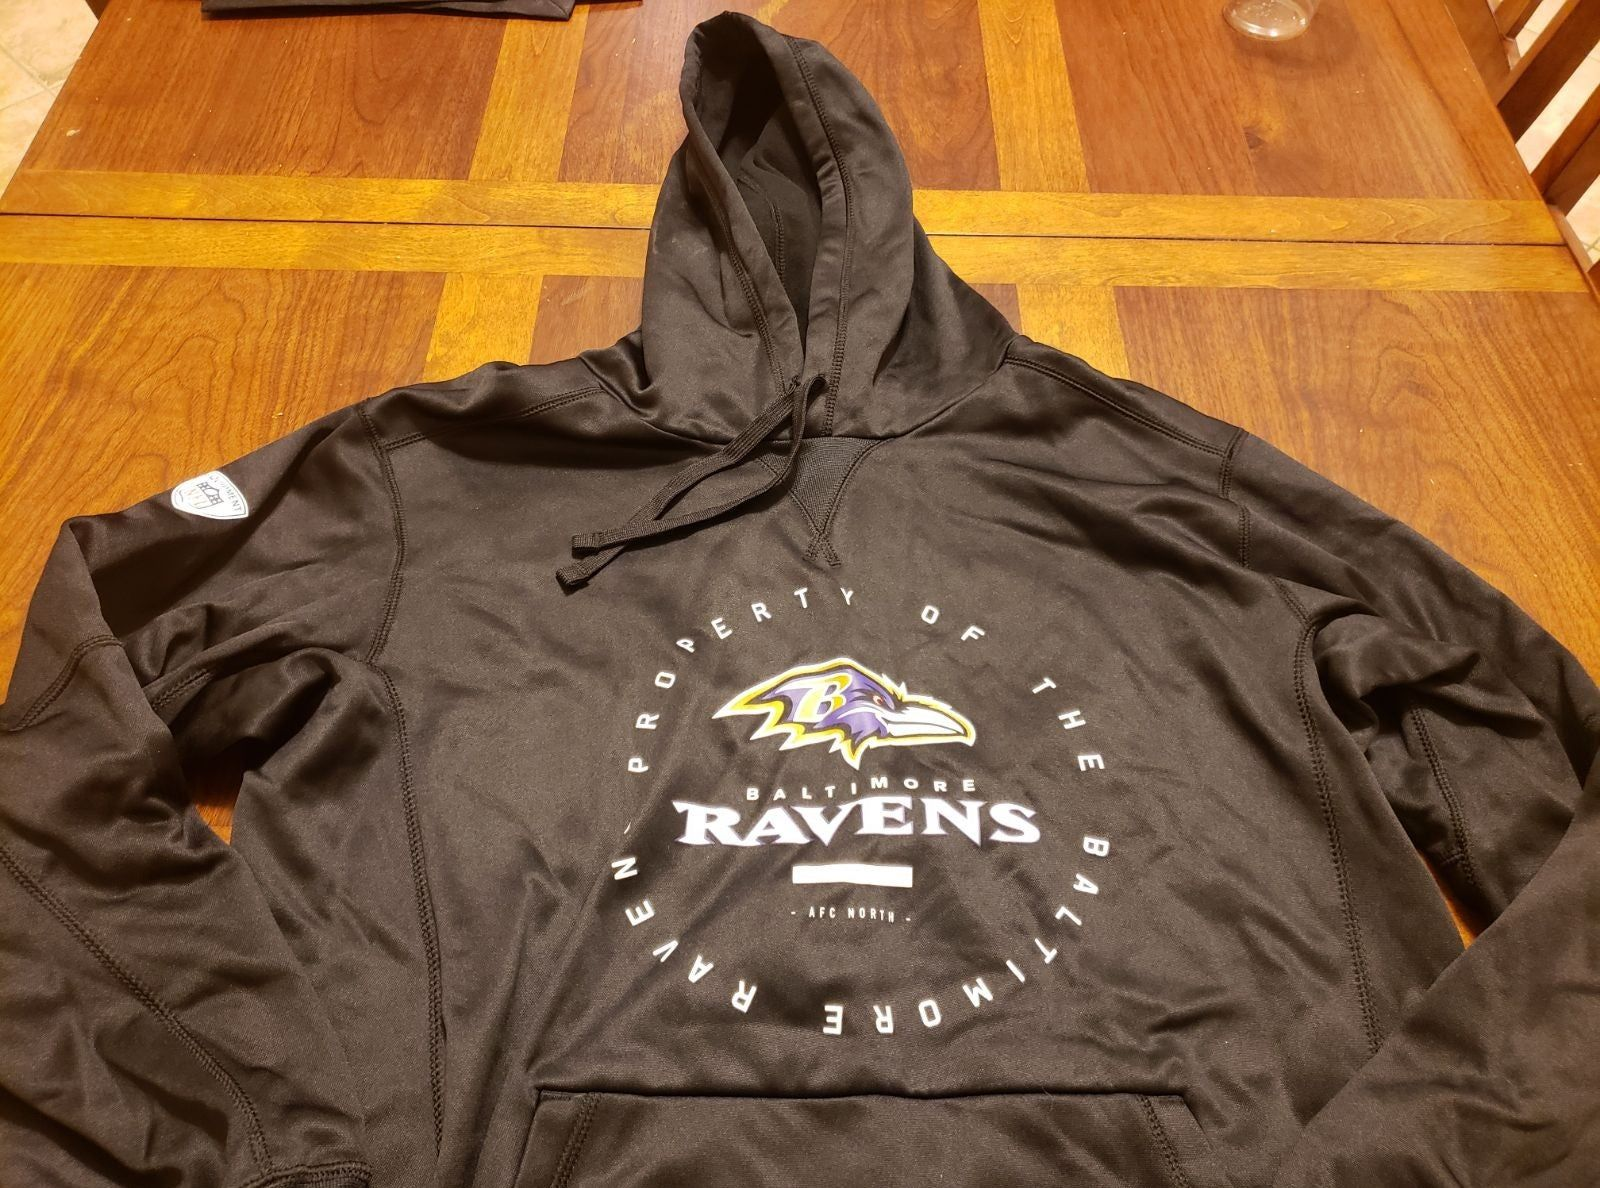 Predownload: New With Tags Ravens Nike Hoodie In Size Mens Medium Lighter Weight Therma Material Msrp 70 Nike Hoodie Hoodies Nike [ 1188 x 1600 Pixel ]